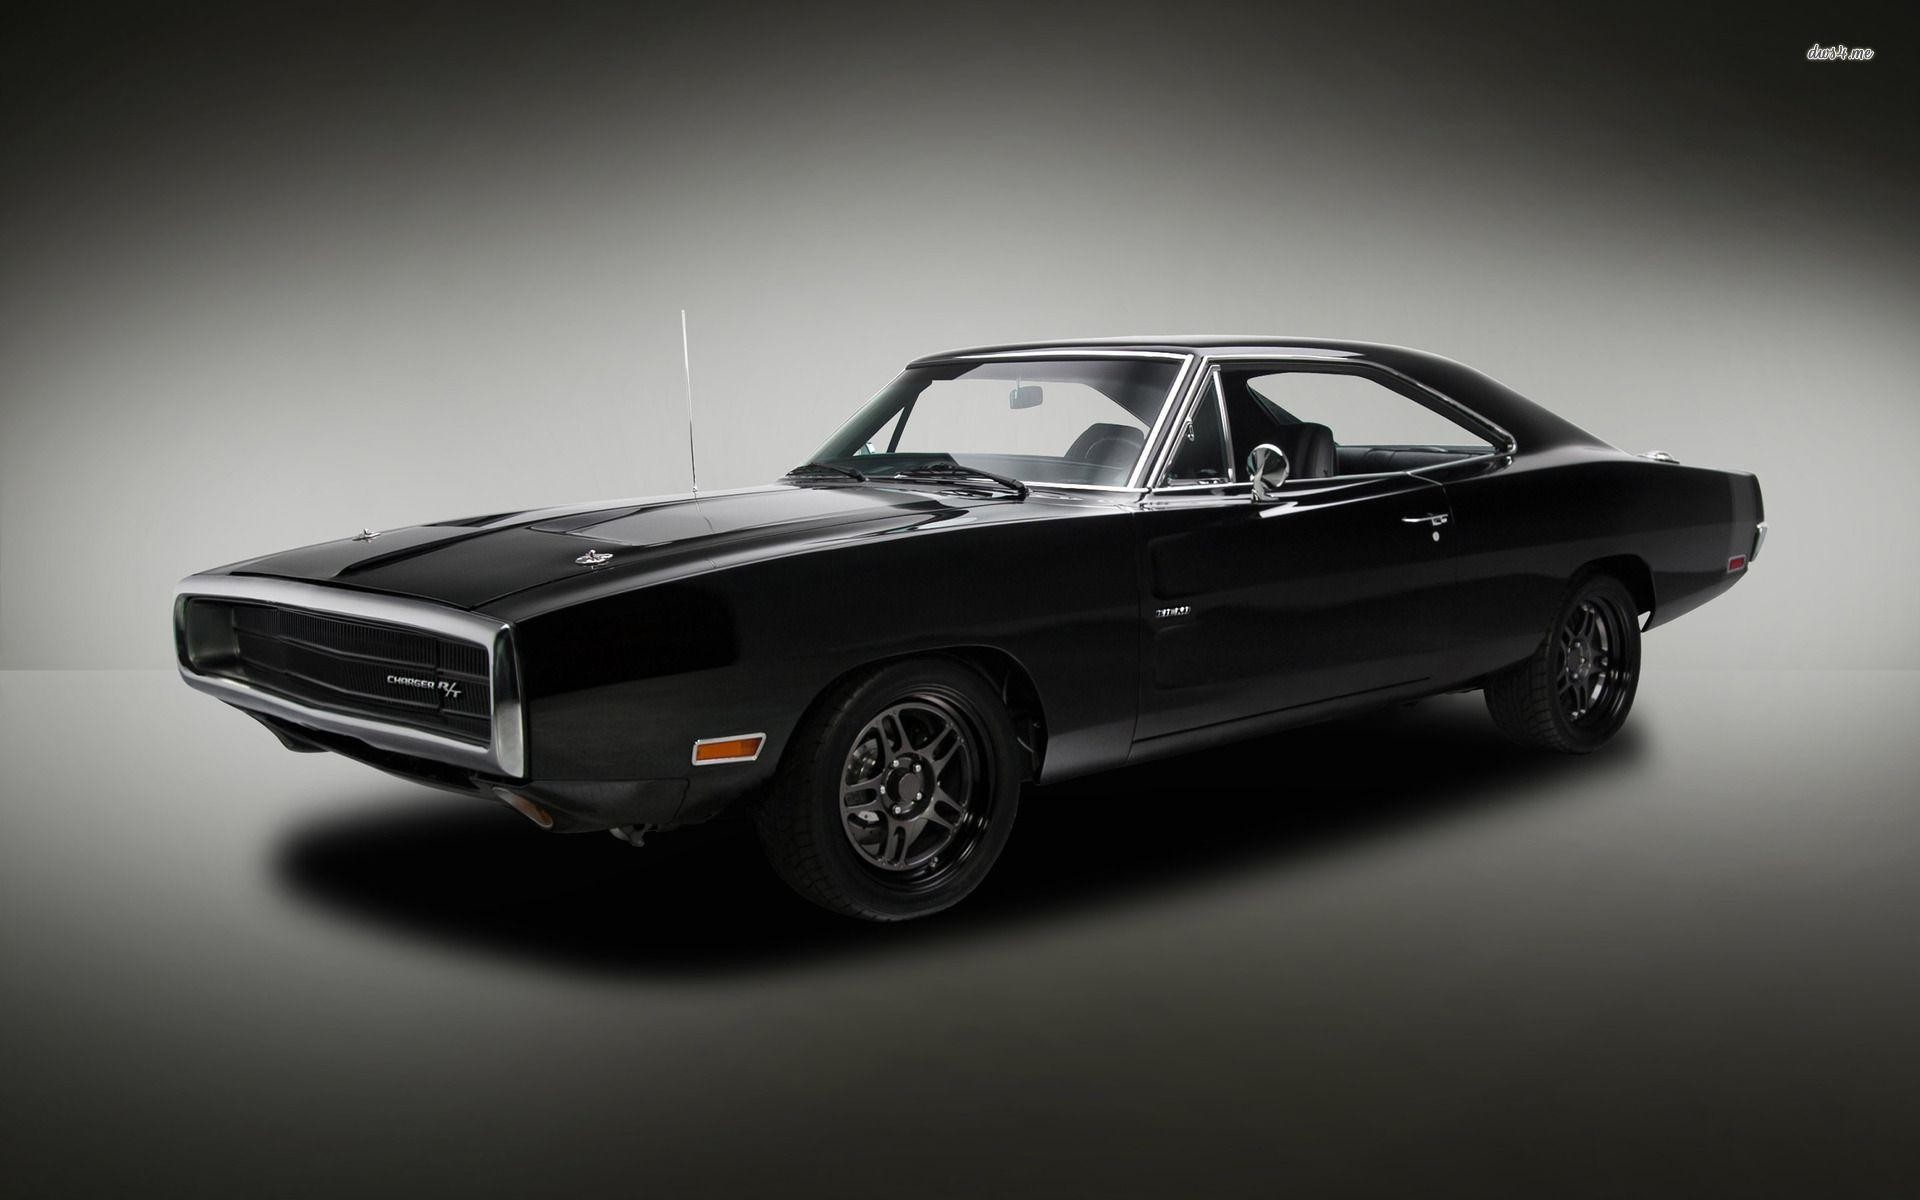 1969 Dodge Charger Wallpaper ①